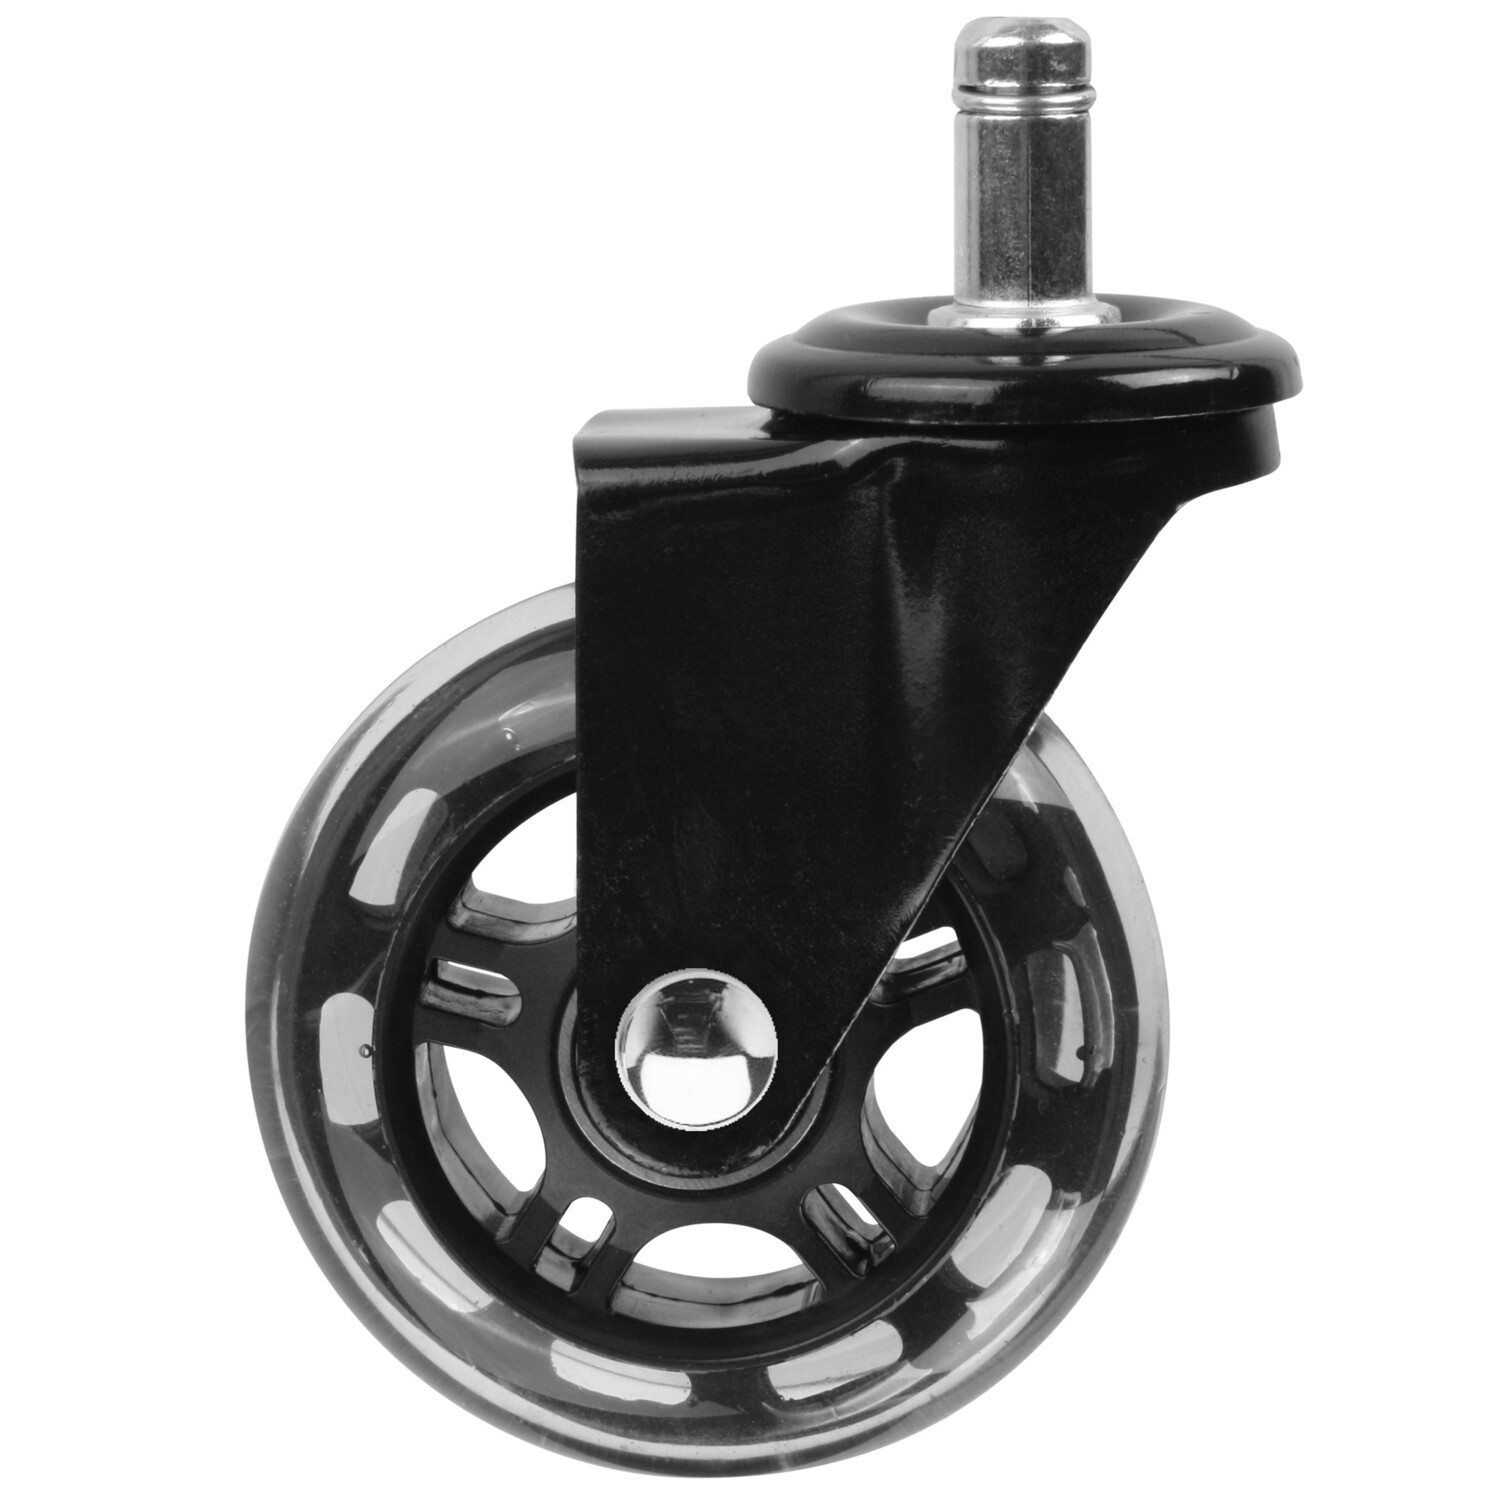 Replacement Rollerblade Casters for Herman Miller Chairs (NON OEM) Set of 5